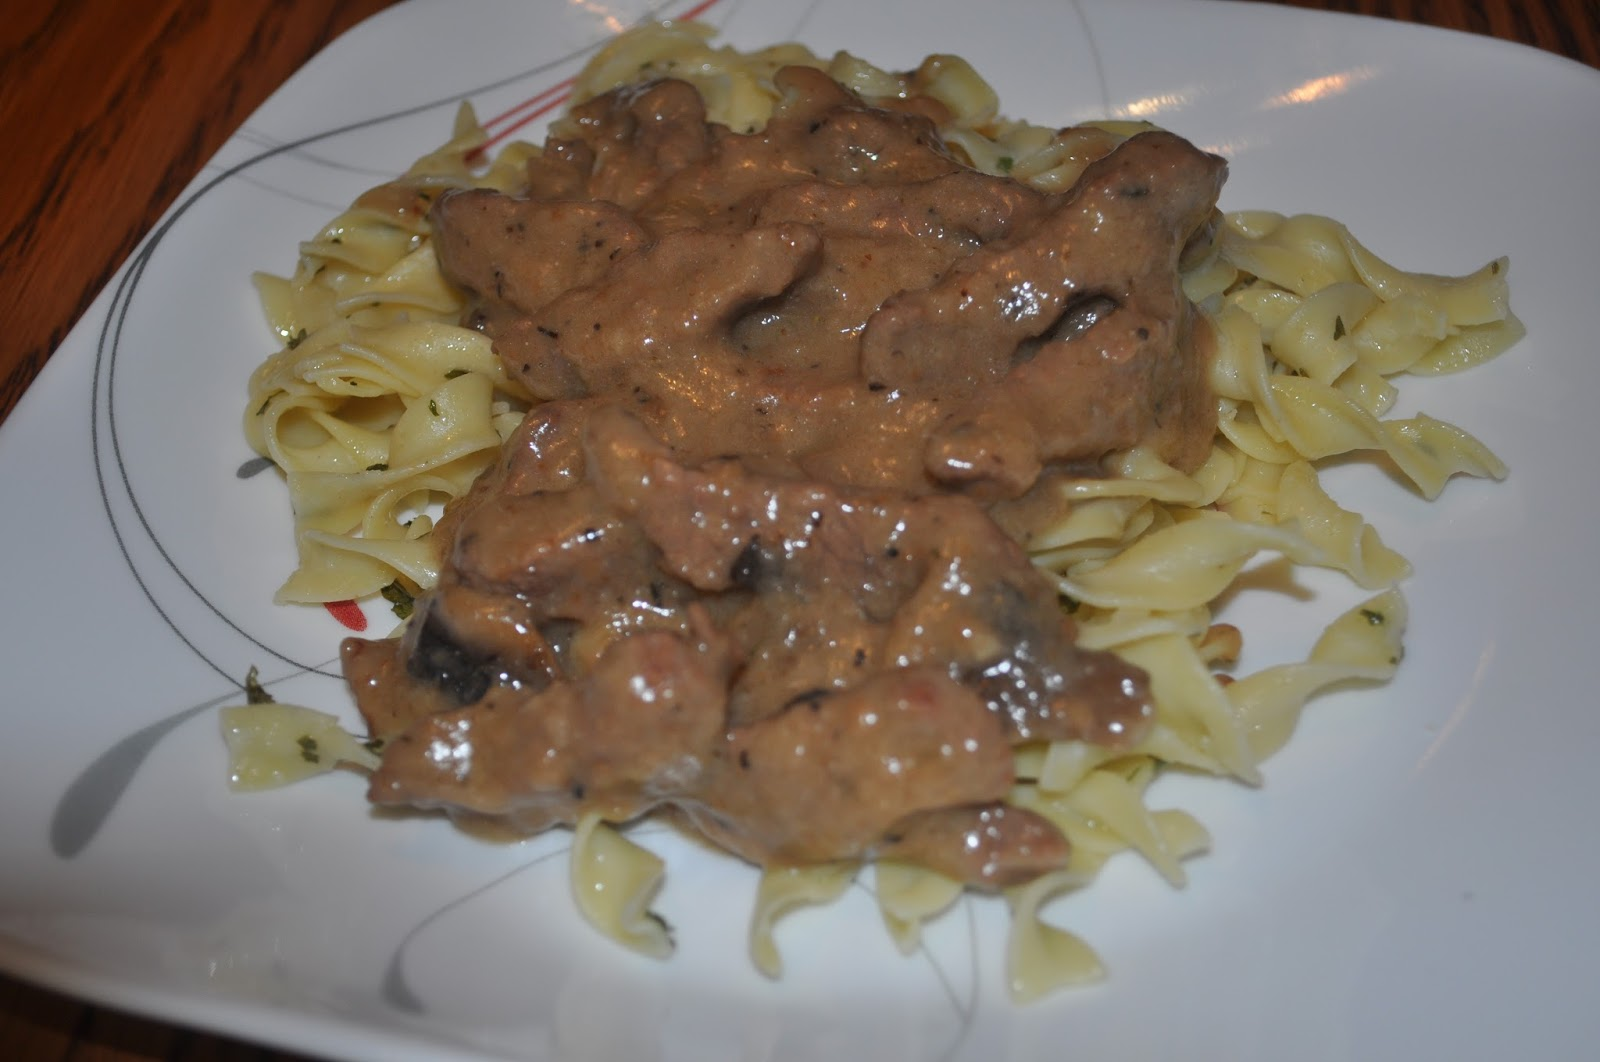 Beth's Favorite Recipes: Beef Stroganoff with Buttered Noodles